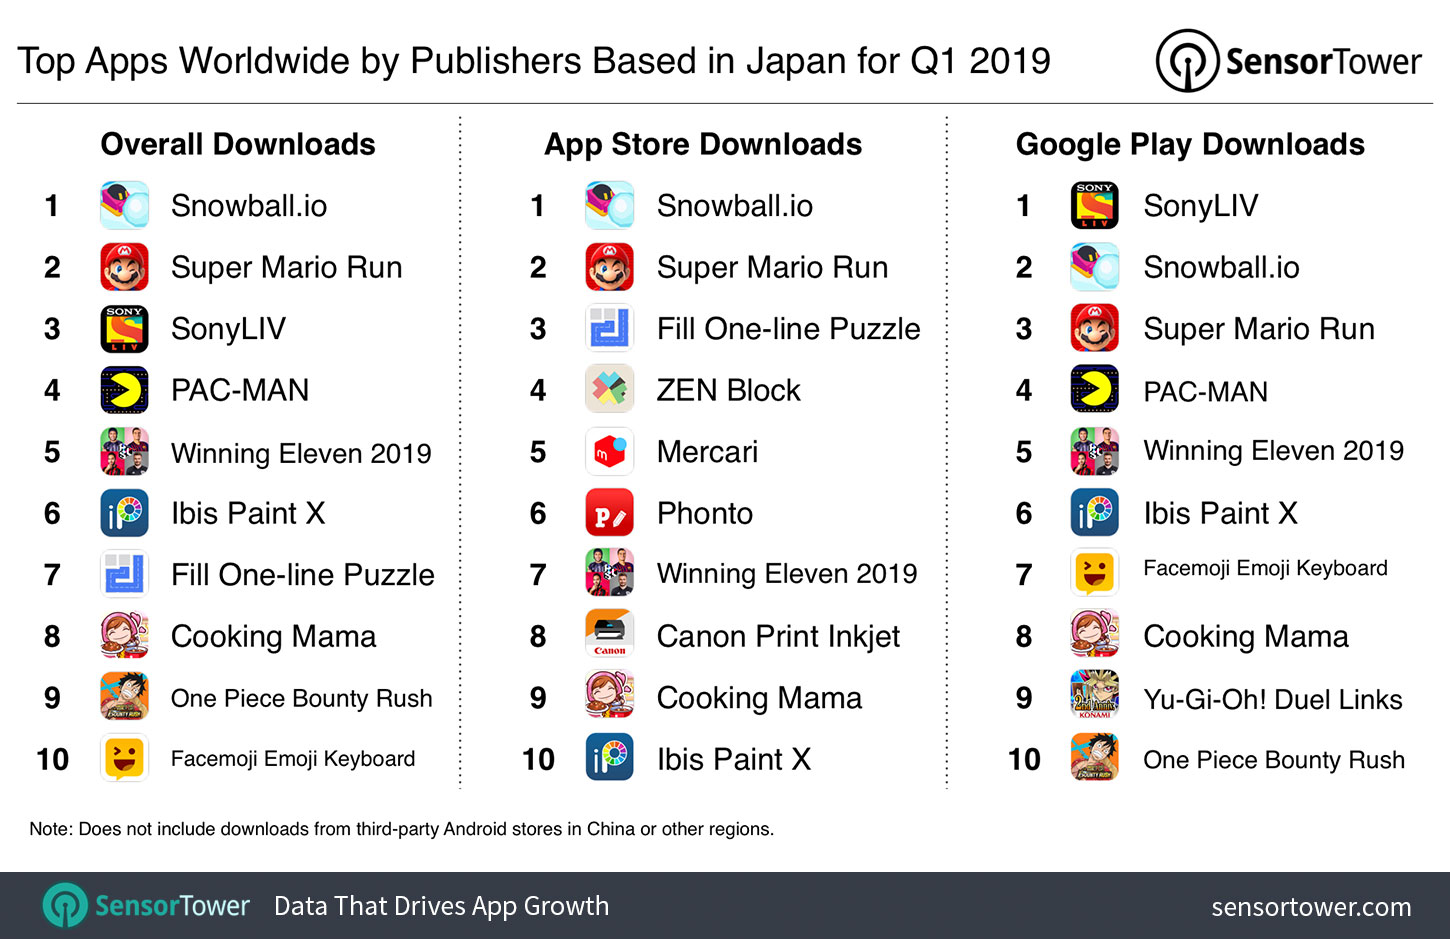 Top Apps Worldwide by Publishers Based in Japan for Q1 2019